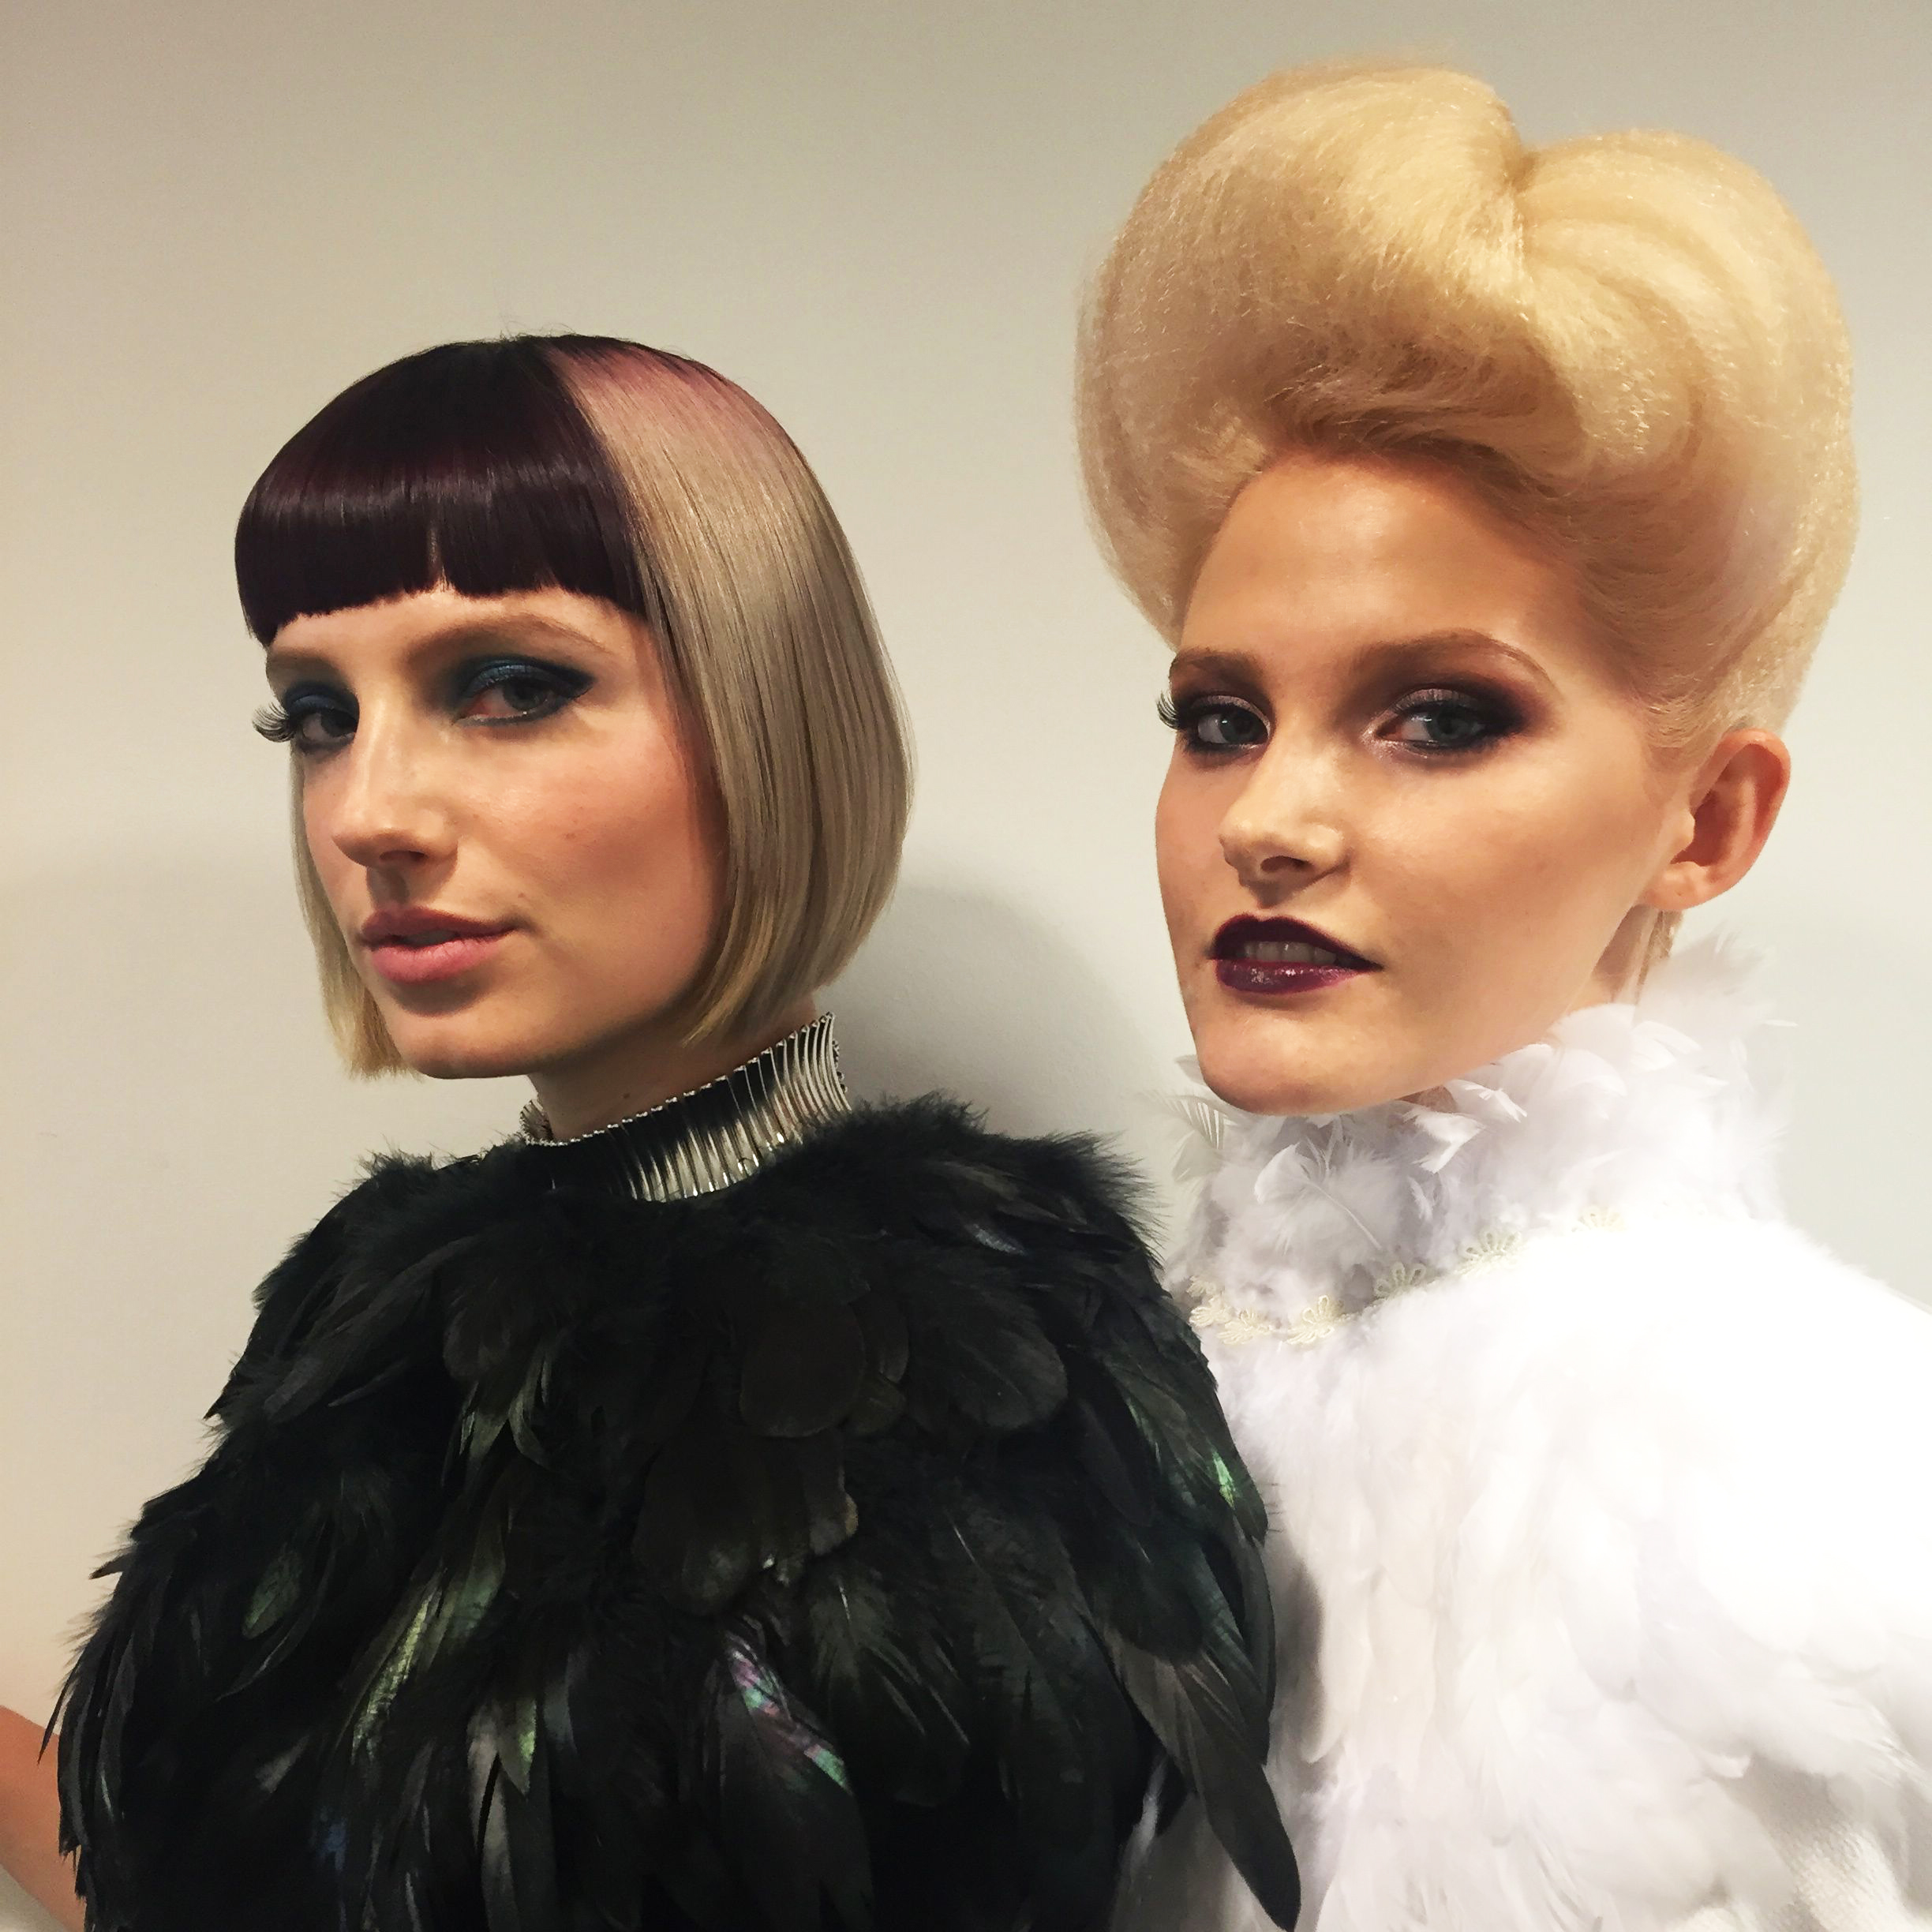 The two models and their final hair and makeup looks.